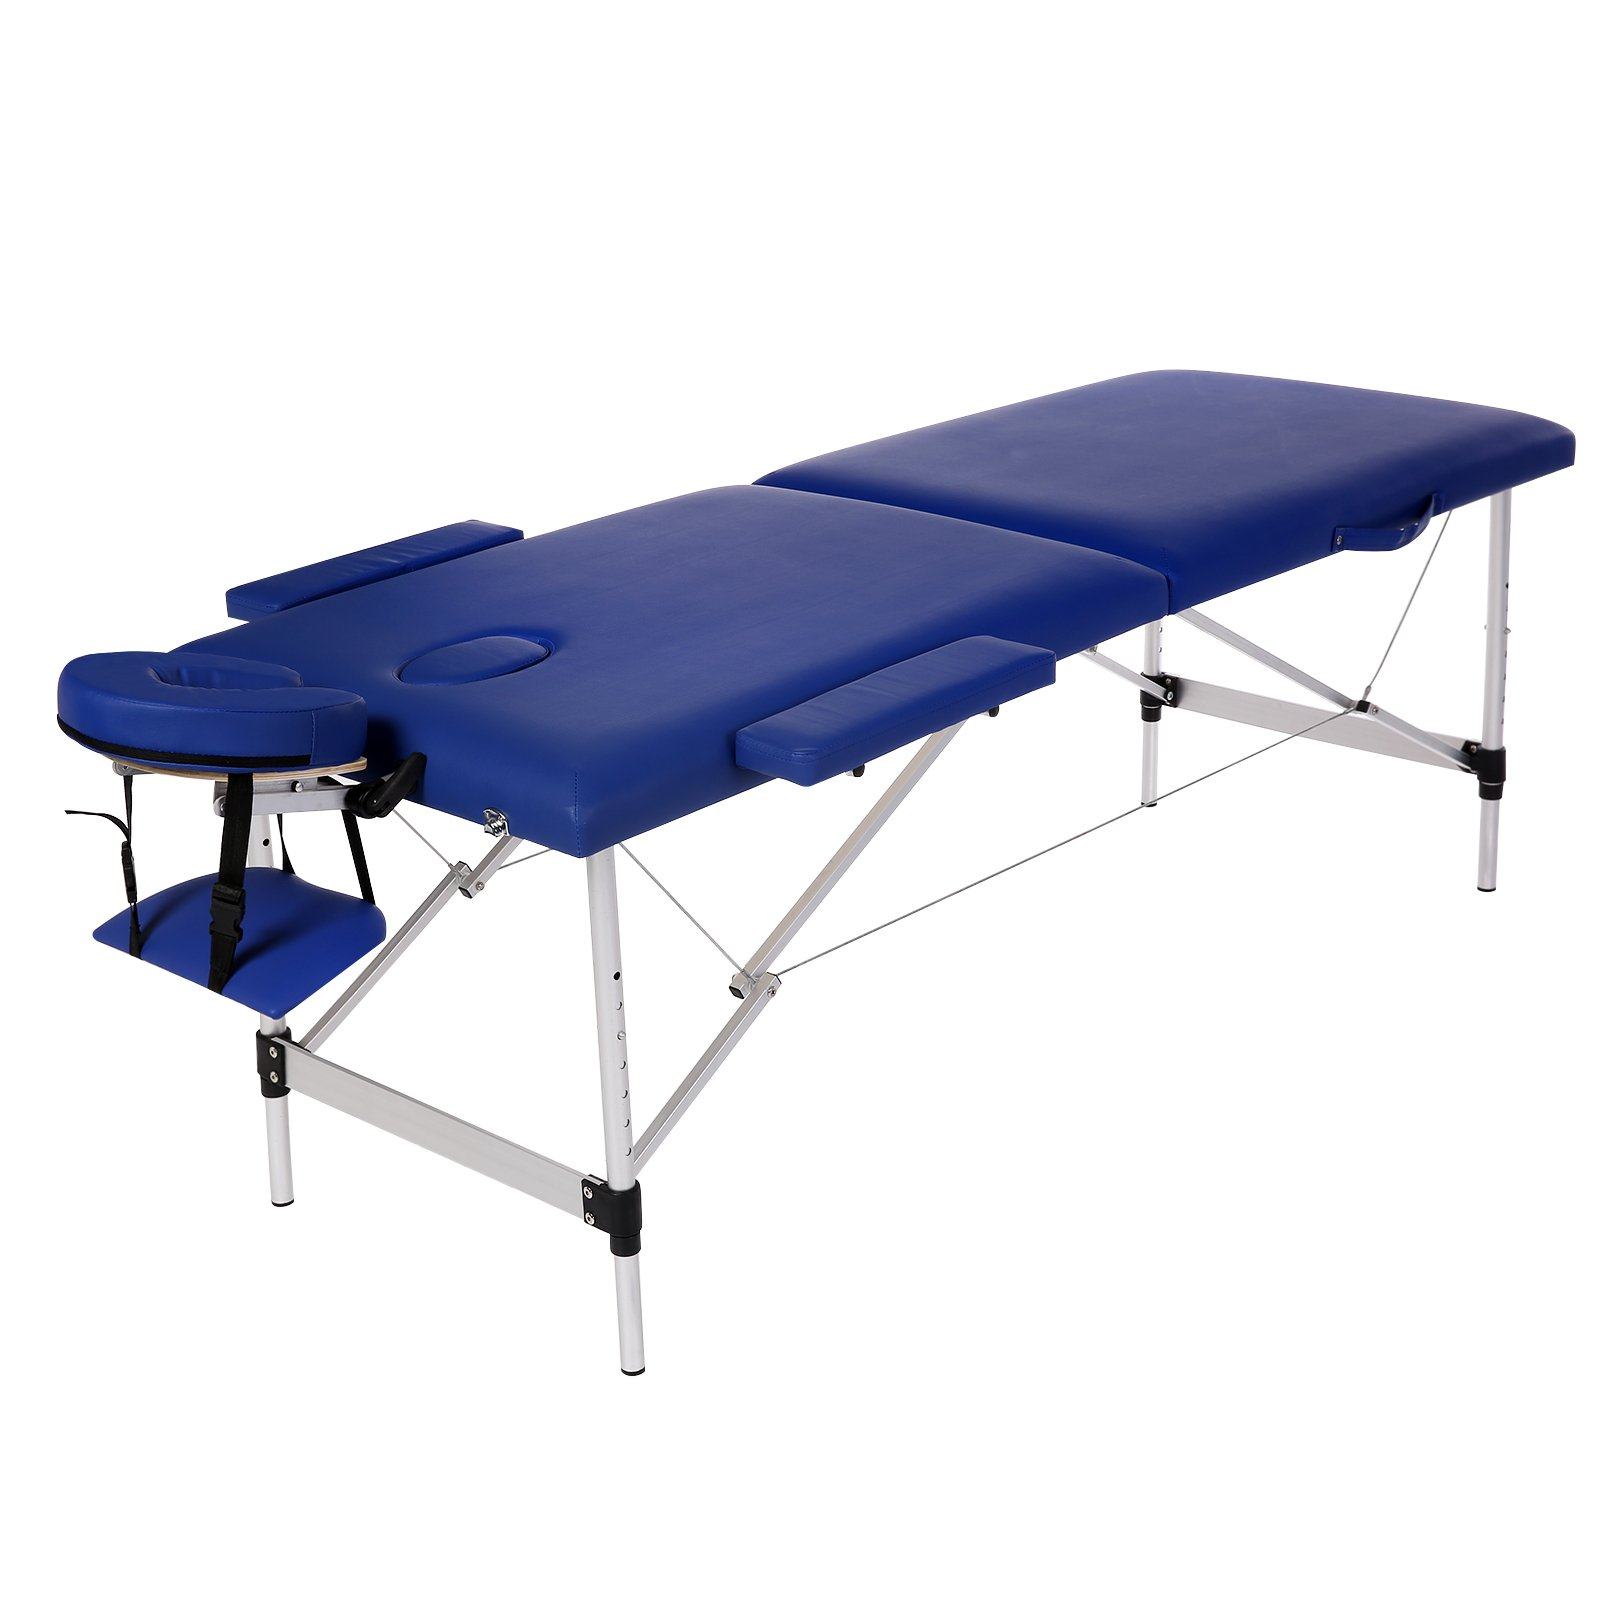 Homdox Portable Massage Table Two-fold with Aluminum Feet, Height Adjustable (71.8'' L 27.3'' W [24.2-31.6]'' H)